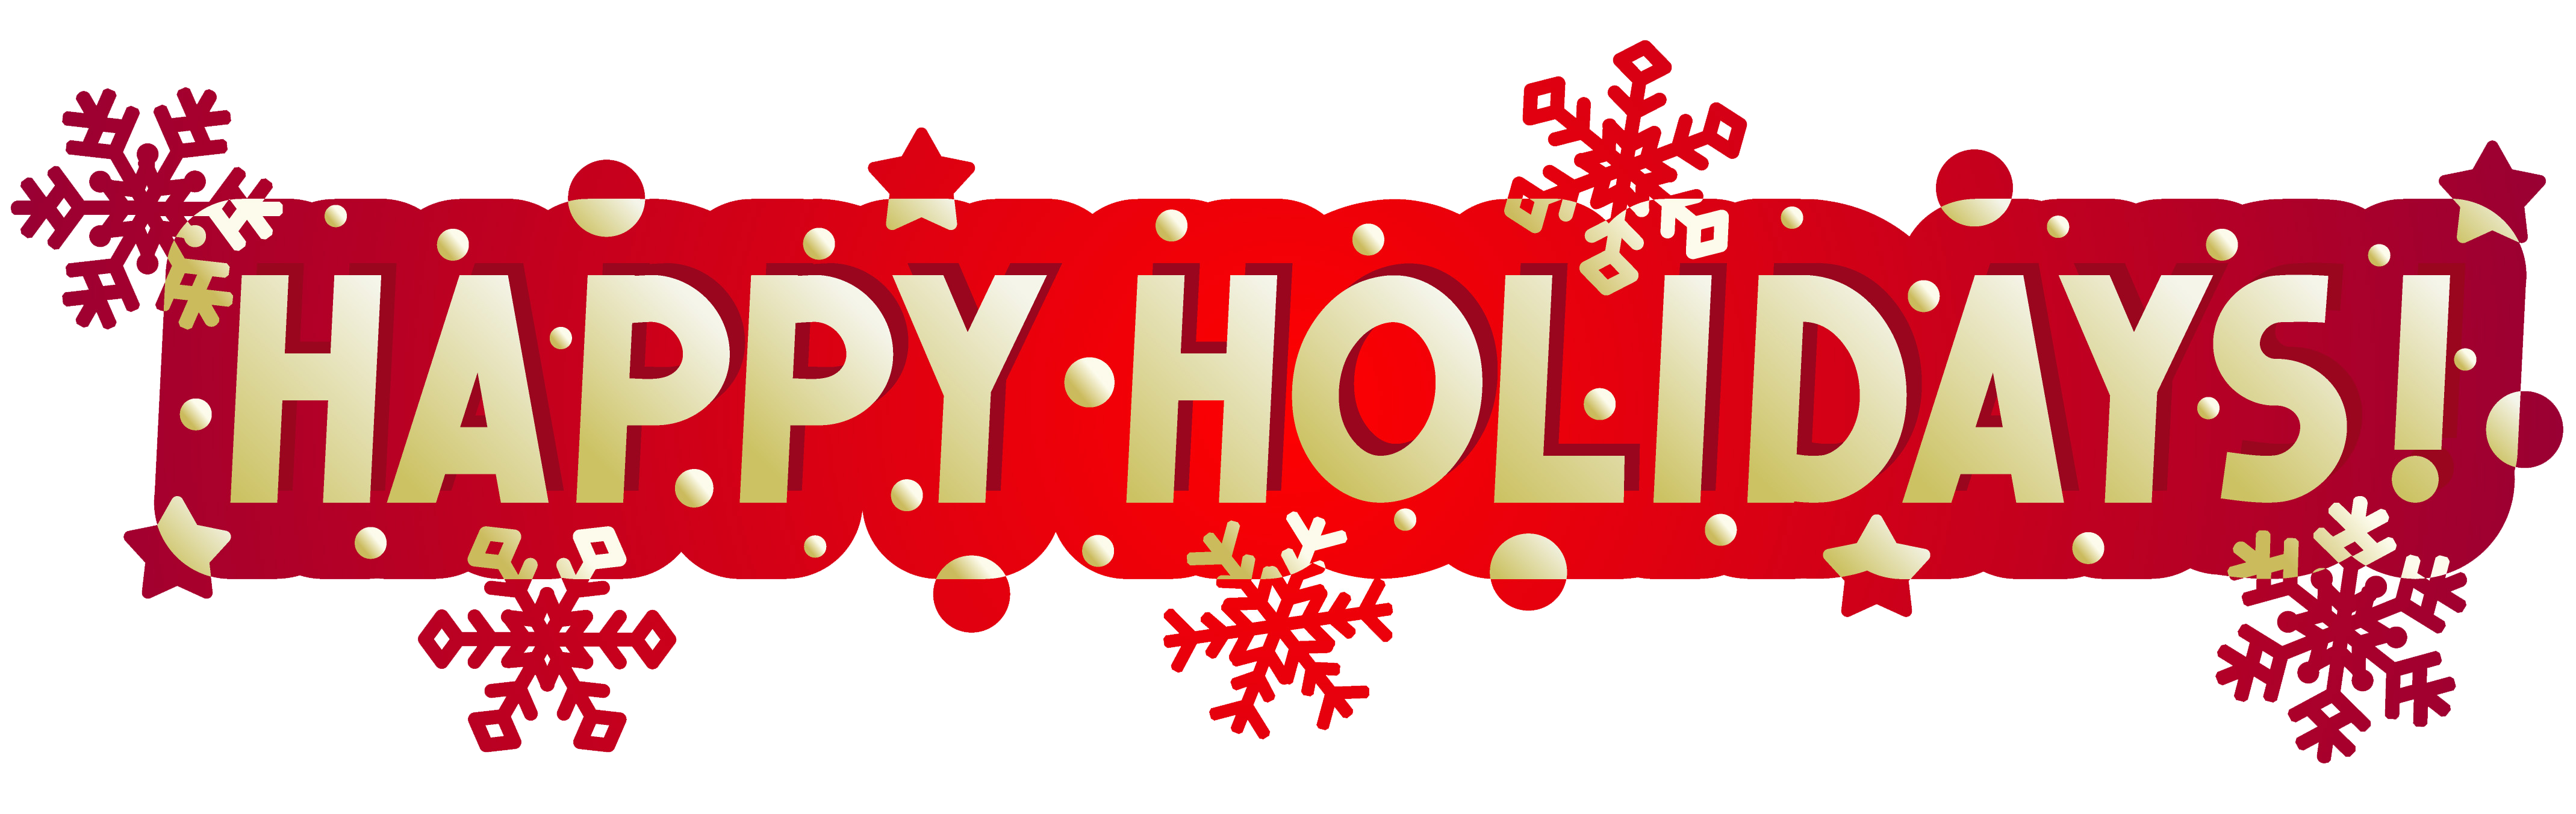 Holiday Clip Art For Kids Free. Facebook ... Happy holidays .